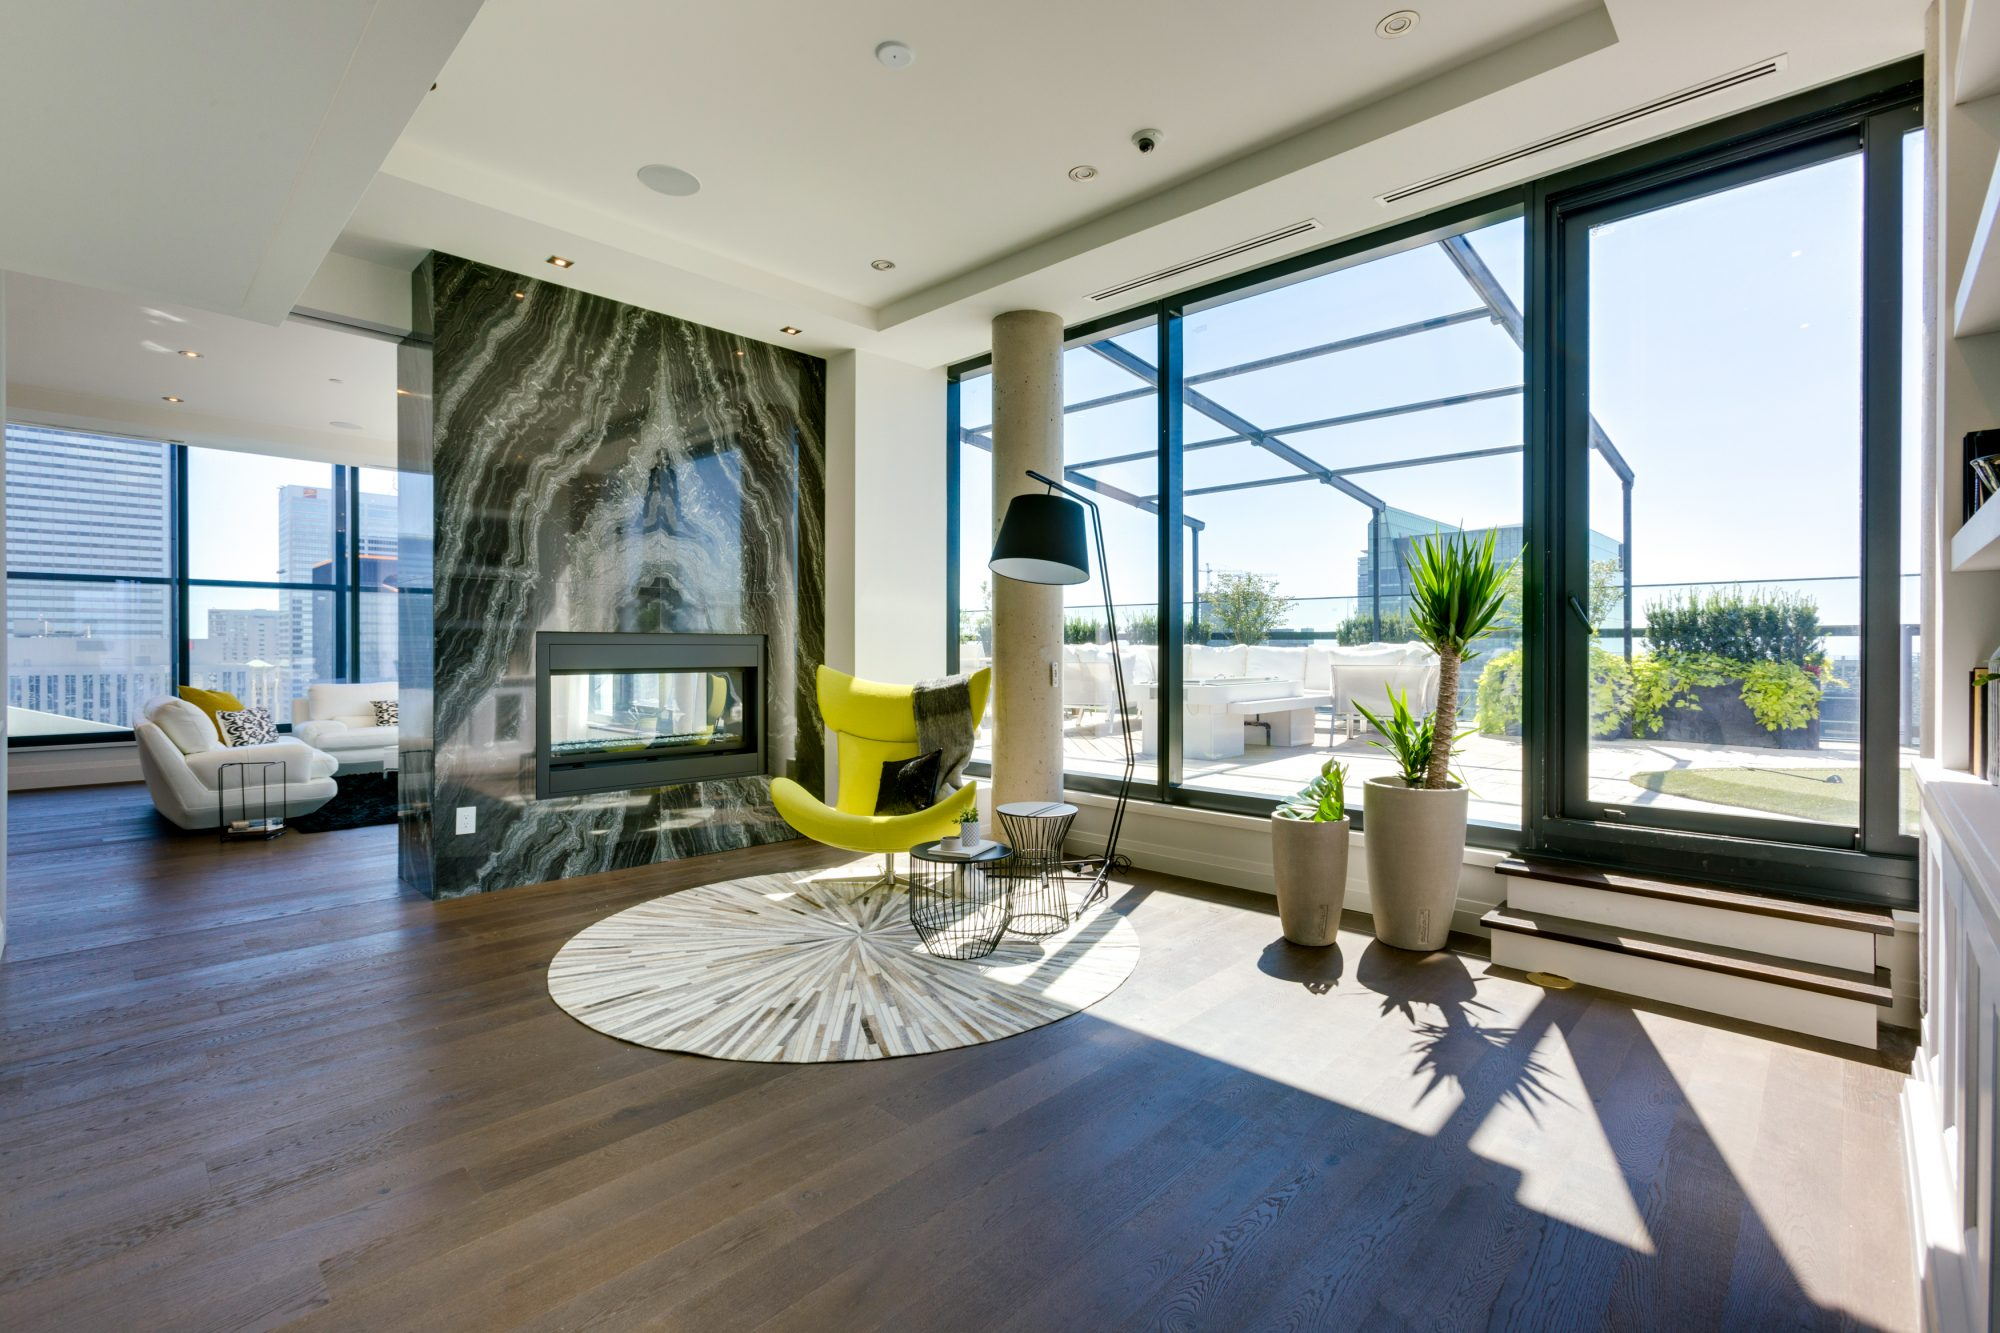 224 KING WEST PENTHOUSE FOR SALE